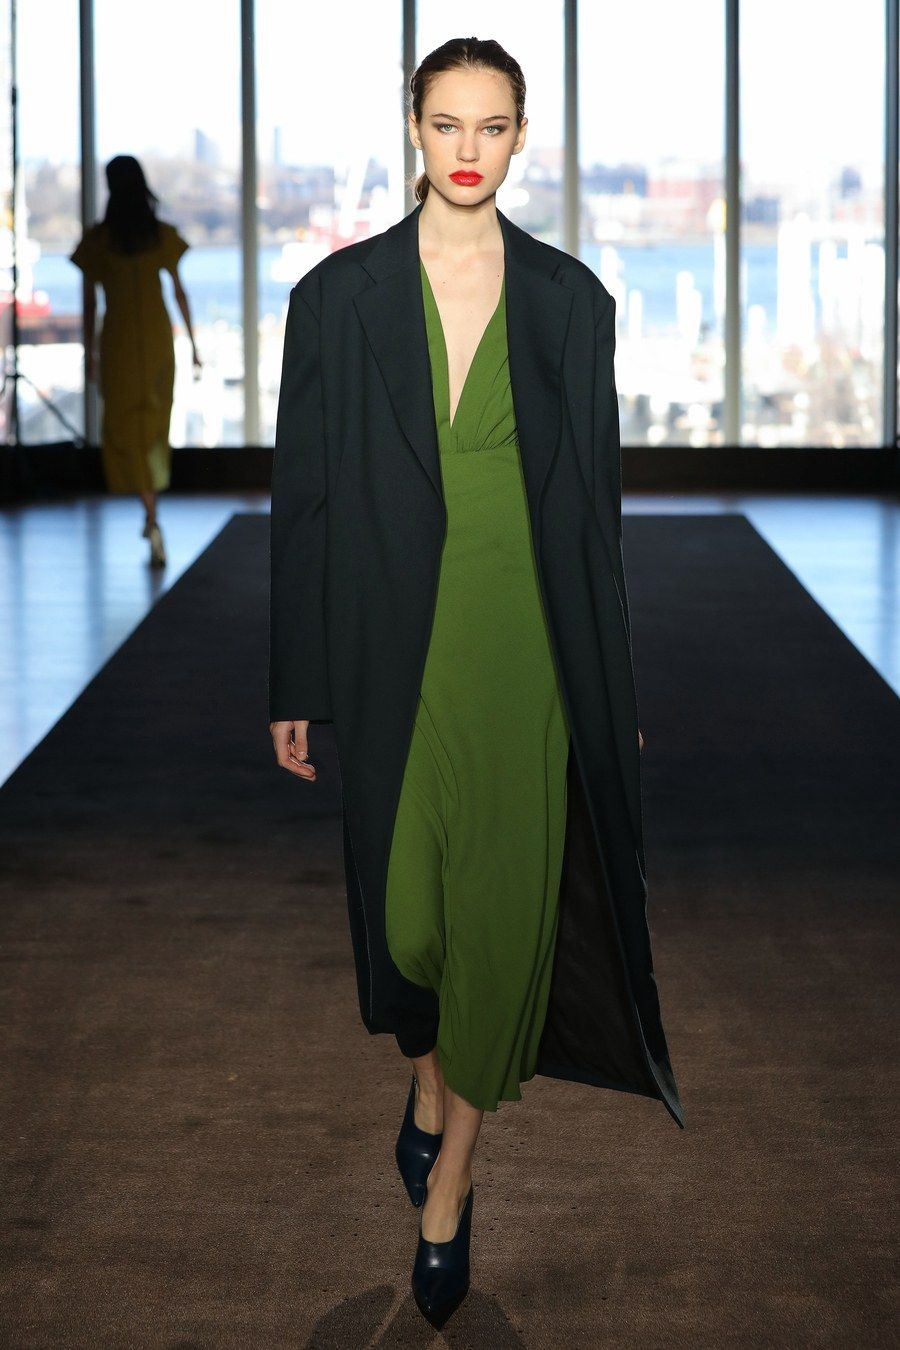 Rodriguez narcisco fall runway review forecasting dress for everyday in 2019